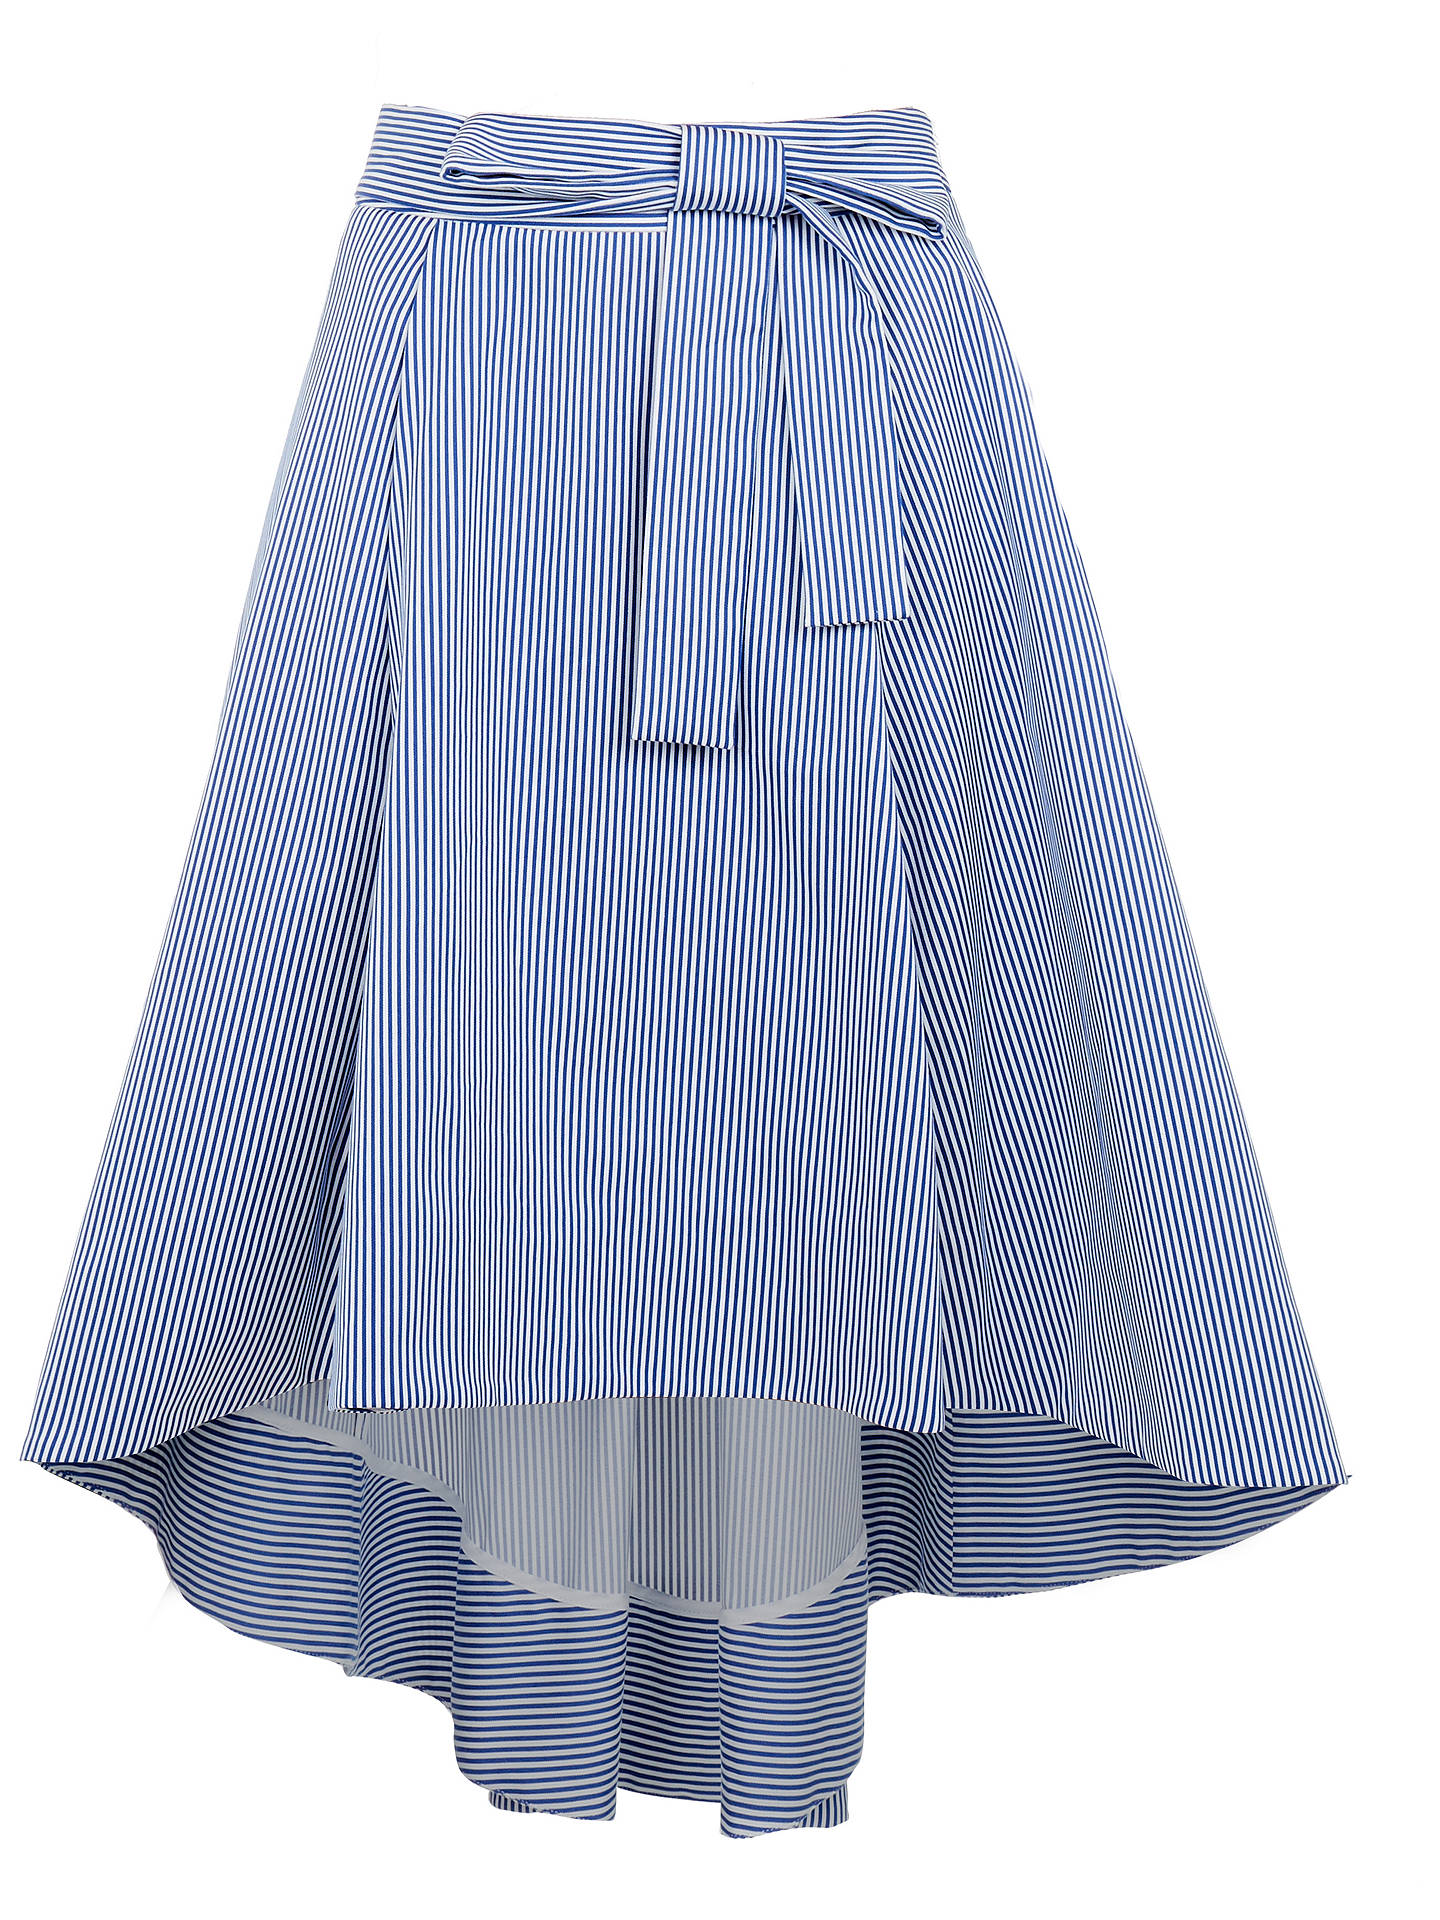 533022886 ... Buy Ted Baker Stripe Drop Hem Cotton Skirt, White/Blue, 6 Online at